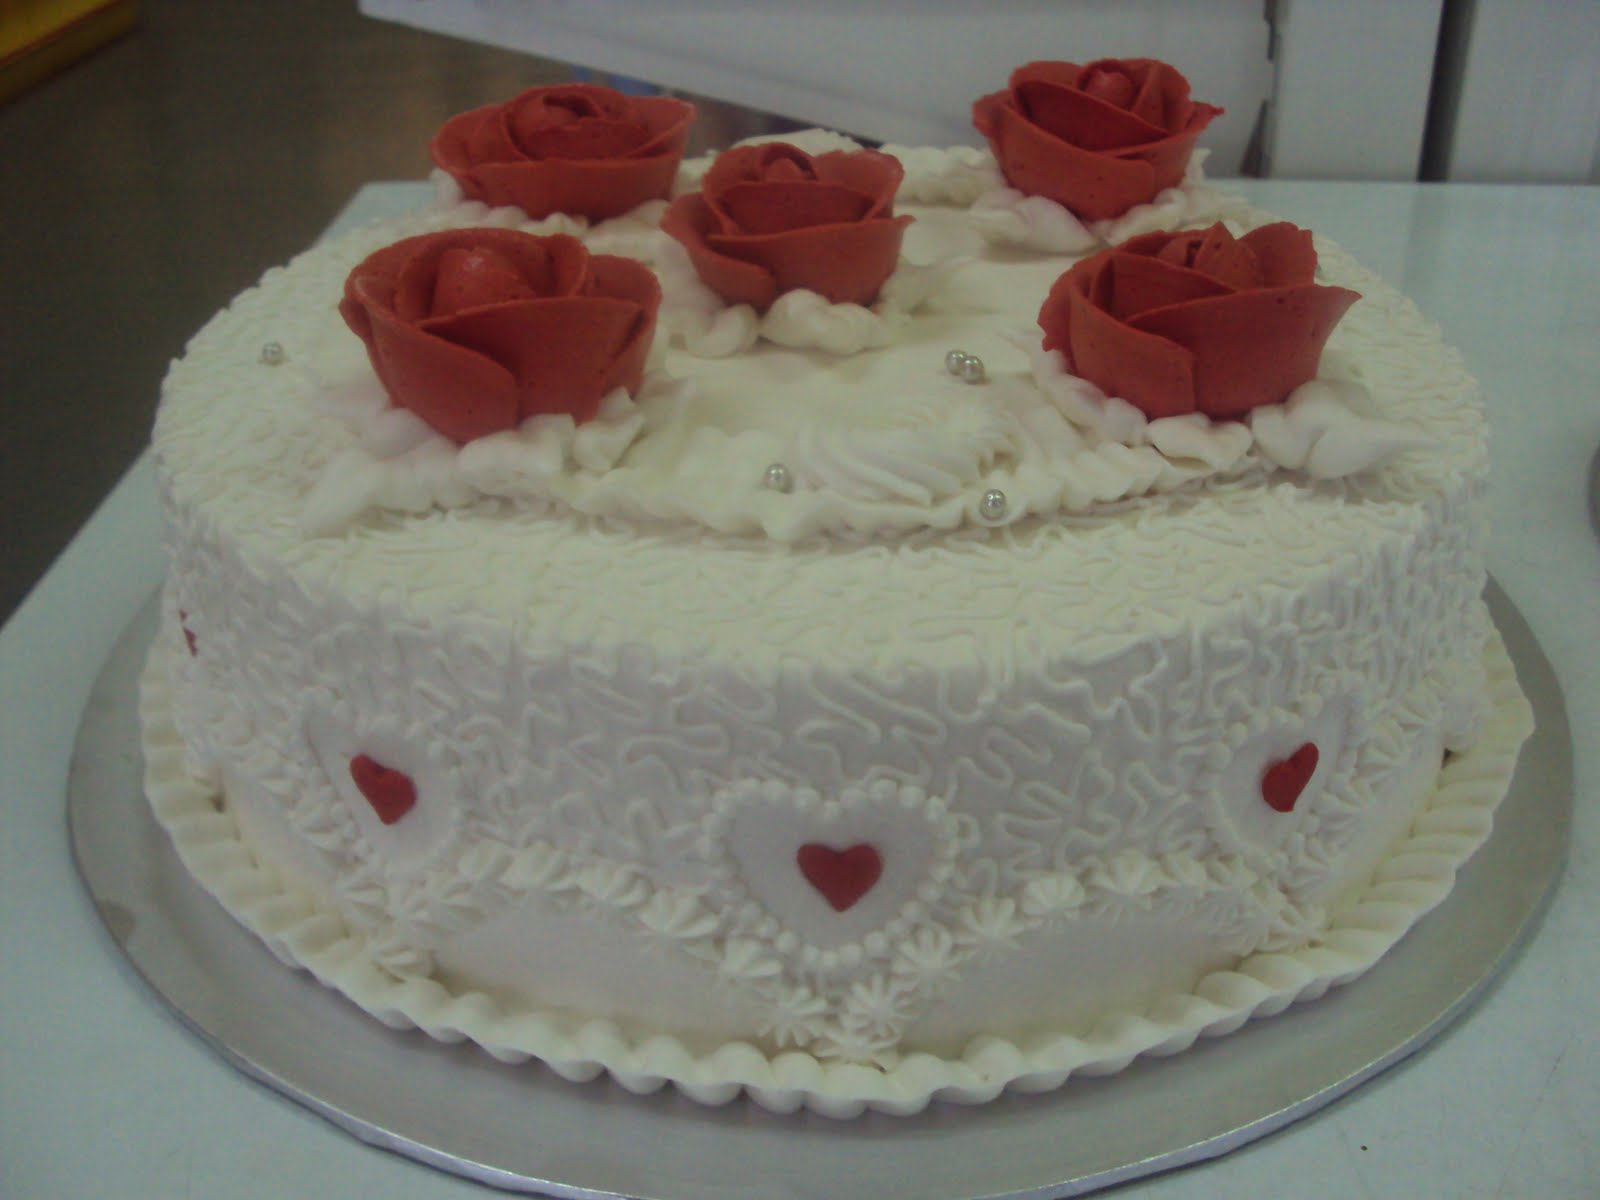 ... PONTIAN: 2-TIER WEDDING CAKE(BUTTER CREAM FROSTING) WHITE-RED THEME